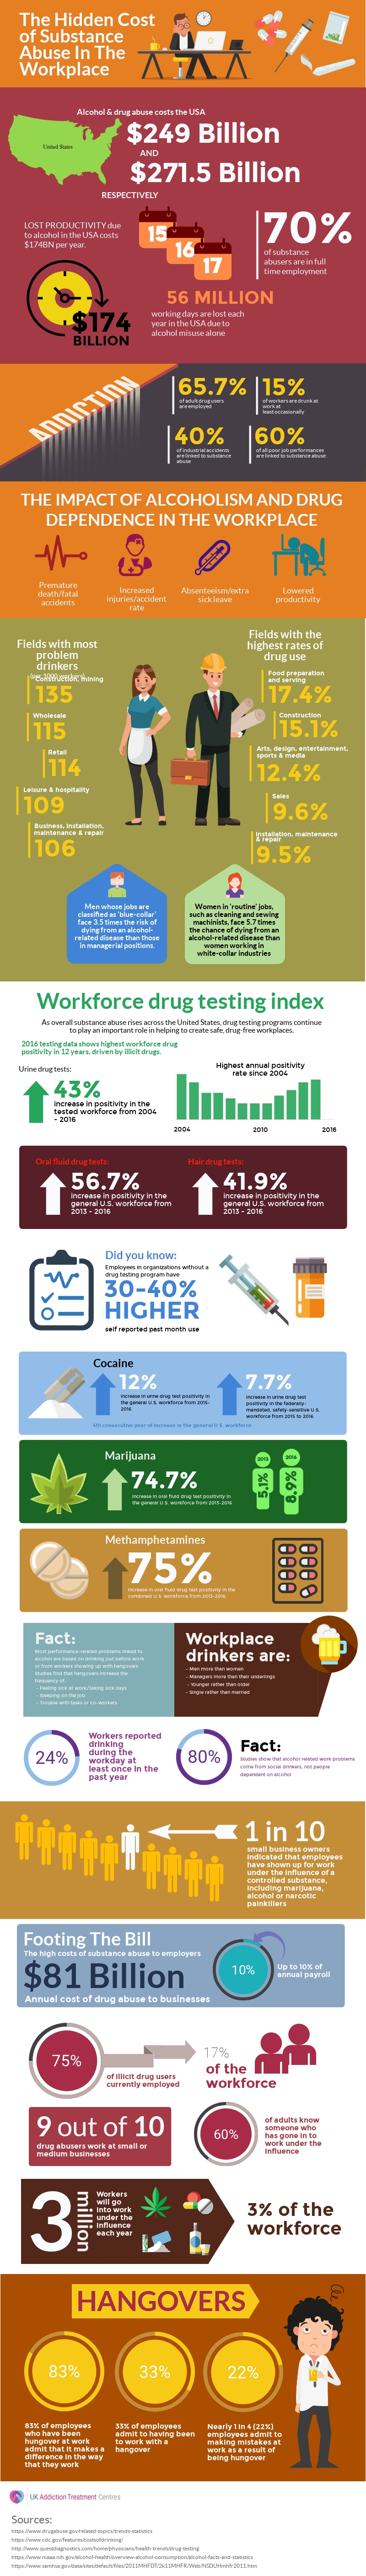 USA-The-Hidden-cost-of-substance-abuse (1)